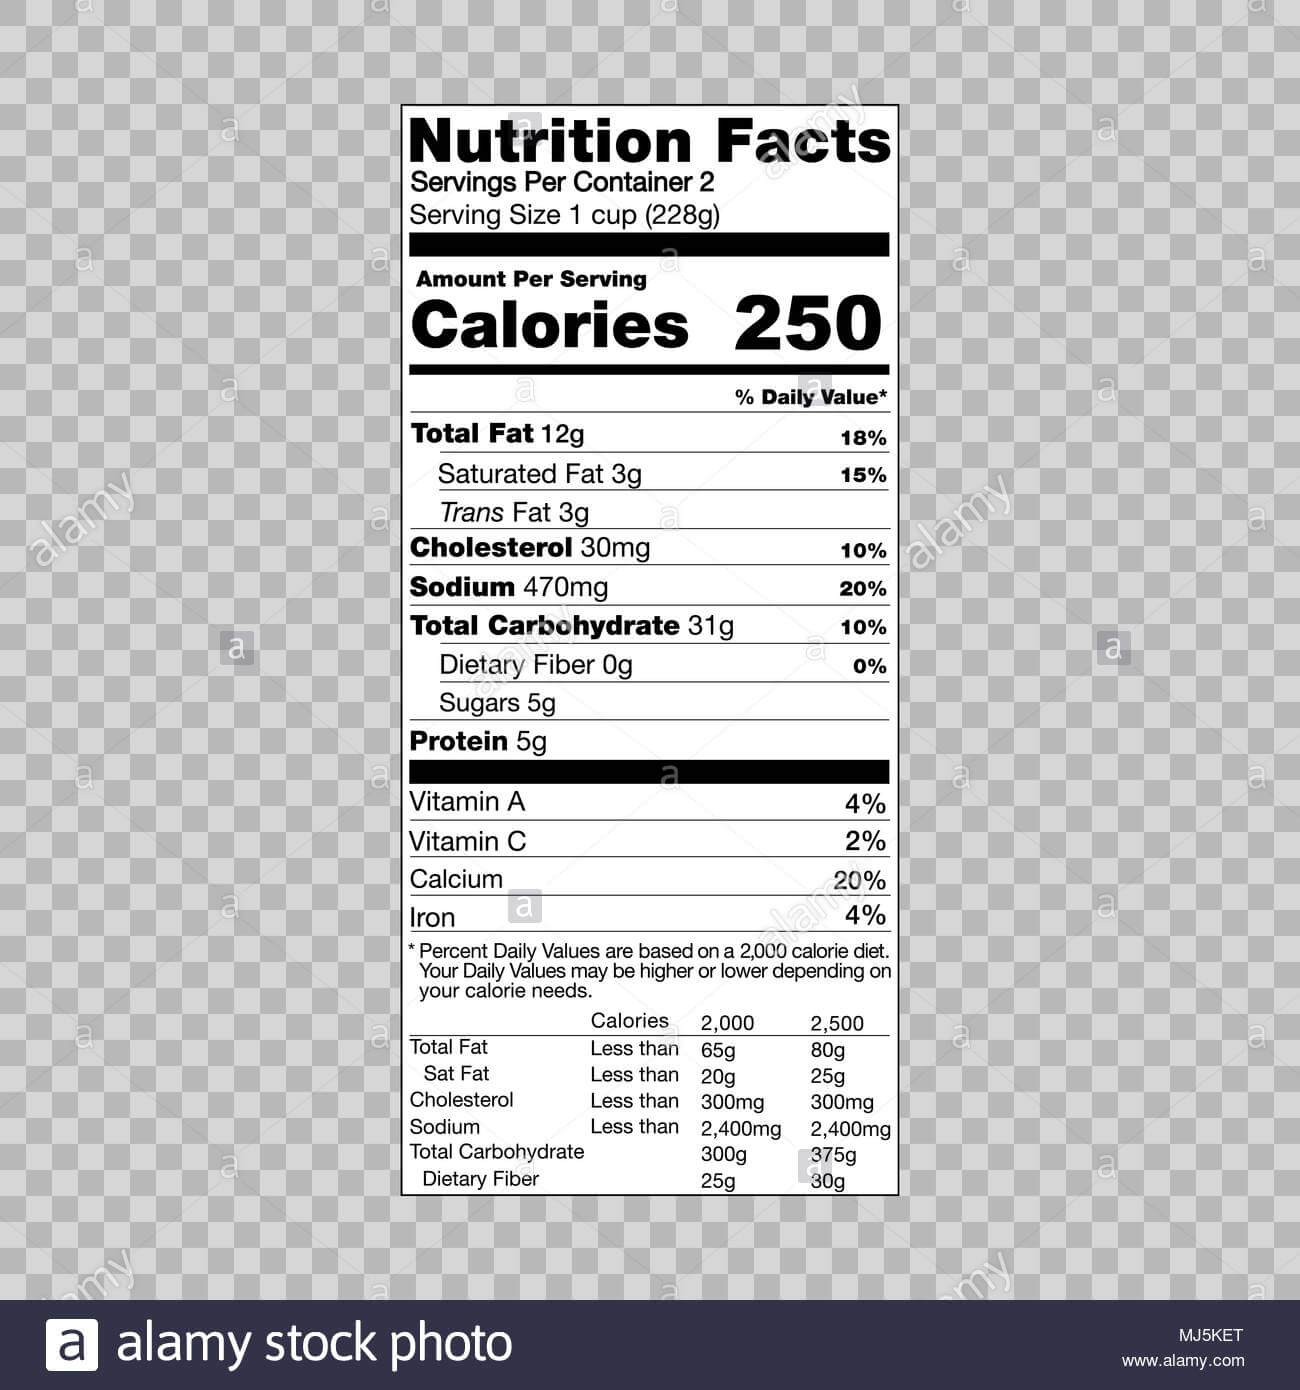 Nutrition Facts Information Template For Food Label Stock for Blank Food Label Template